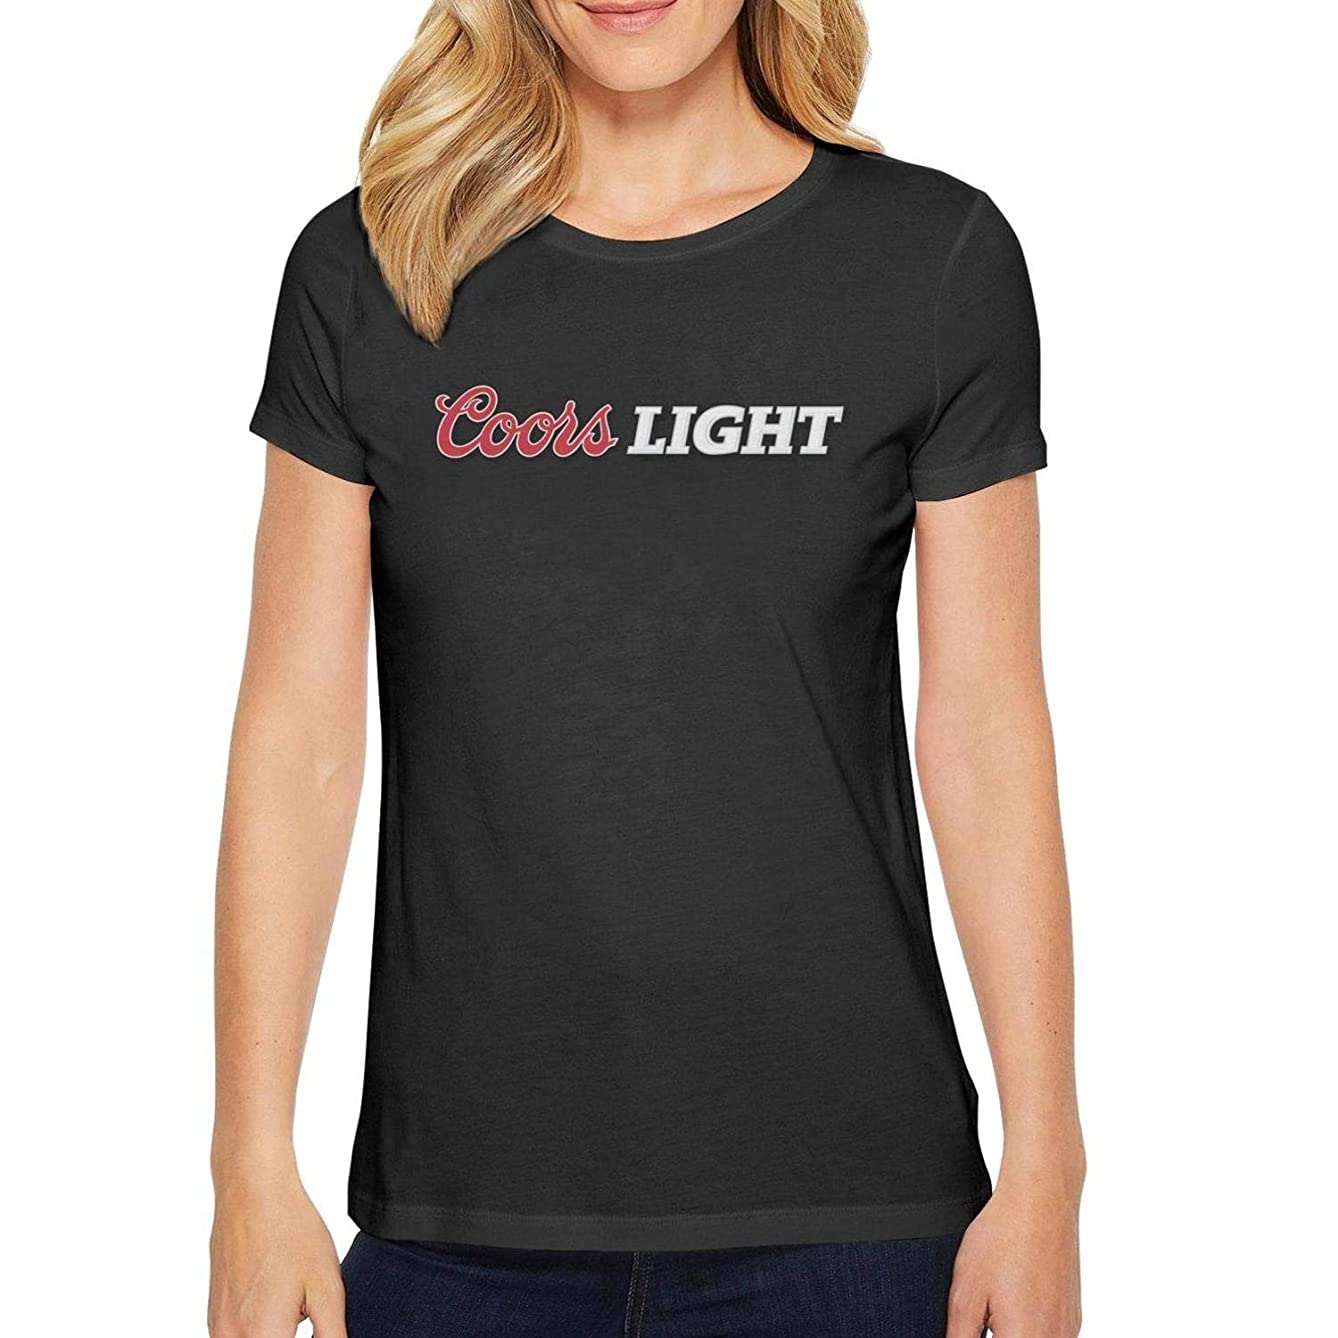 iorty rtty Beautiful Women top Short Sleeve Adolph-Coors-Beer- Casual Tshirts